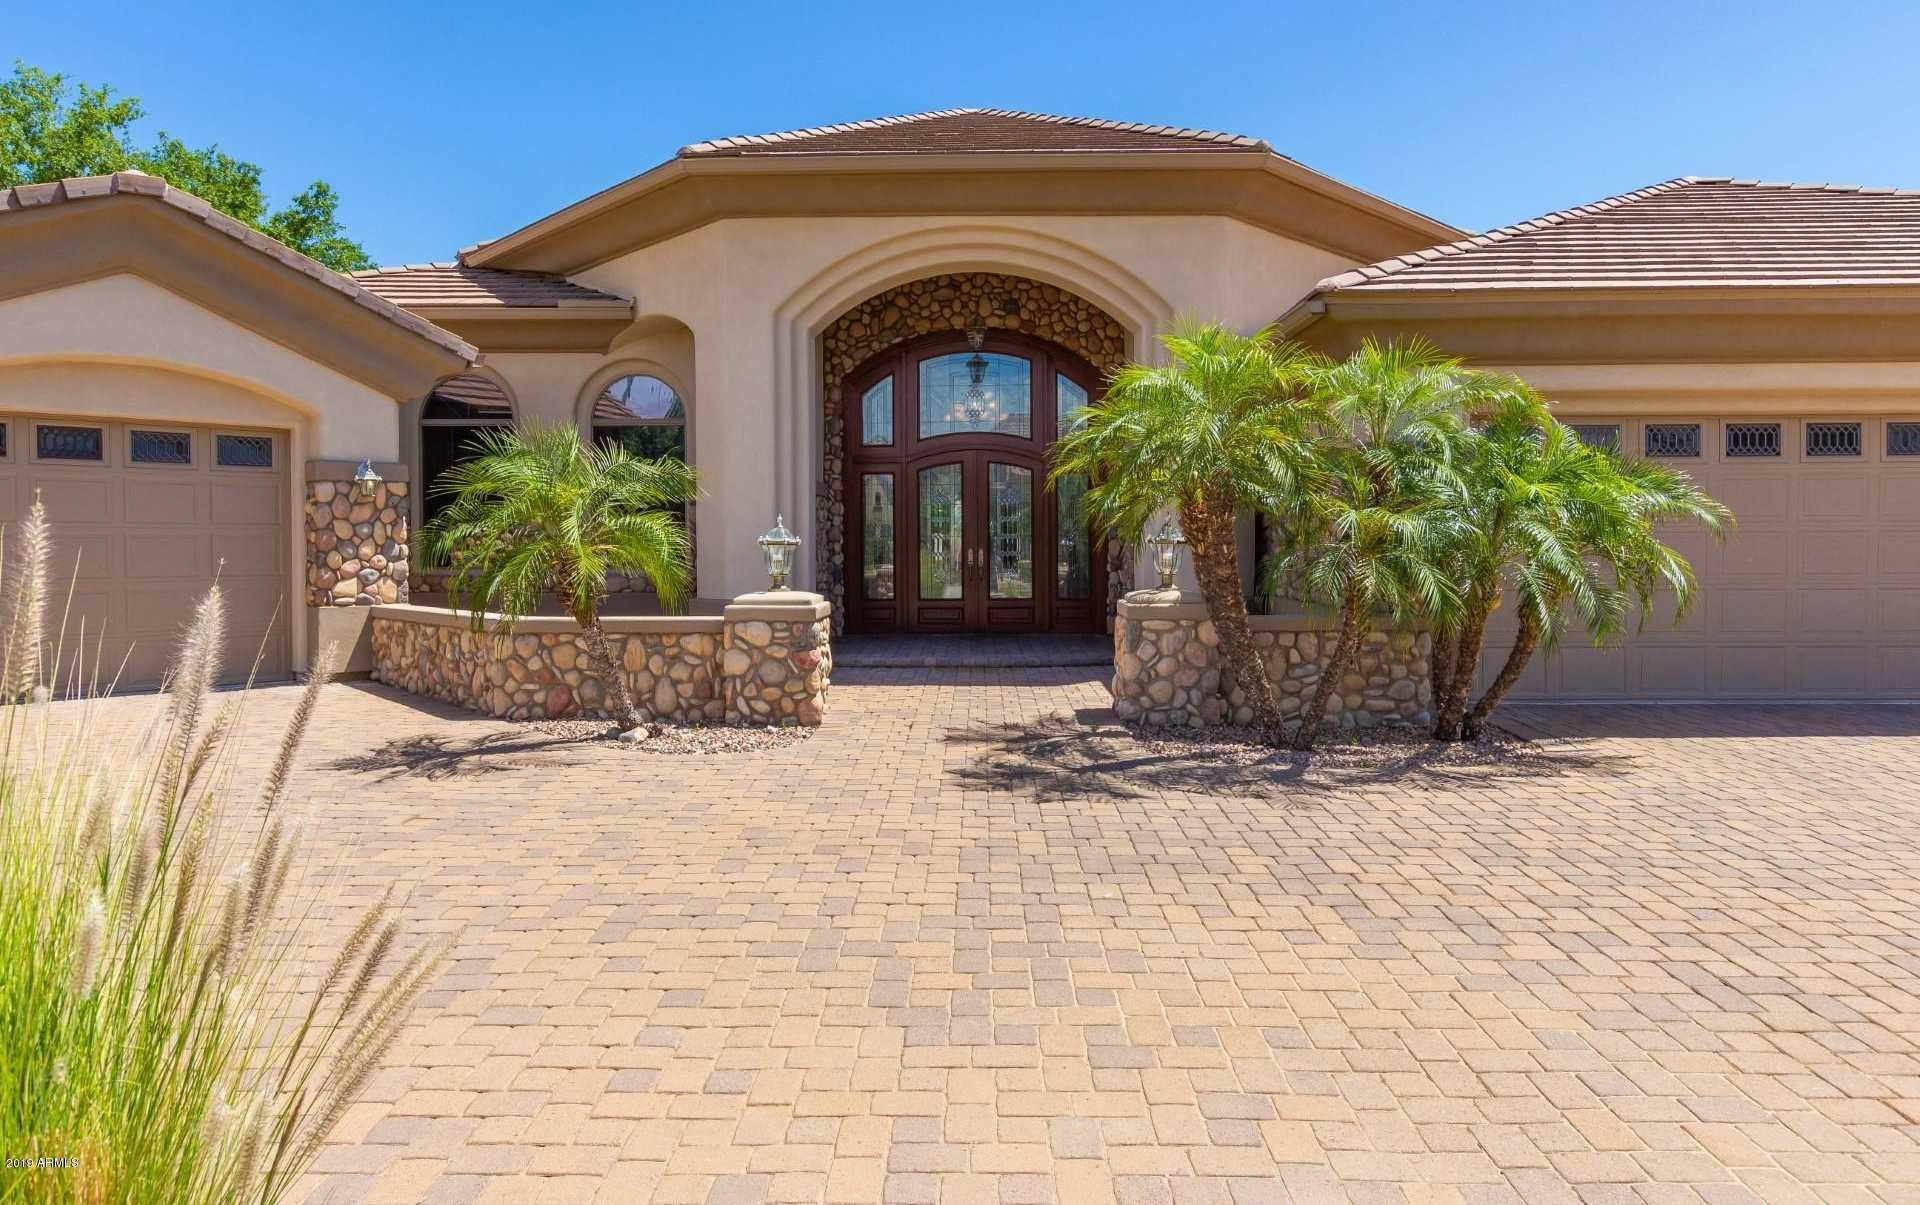 $1,250,000 - 5Br/5Ba - Home for Sale in Cantera Gates, Peoria